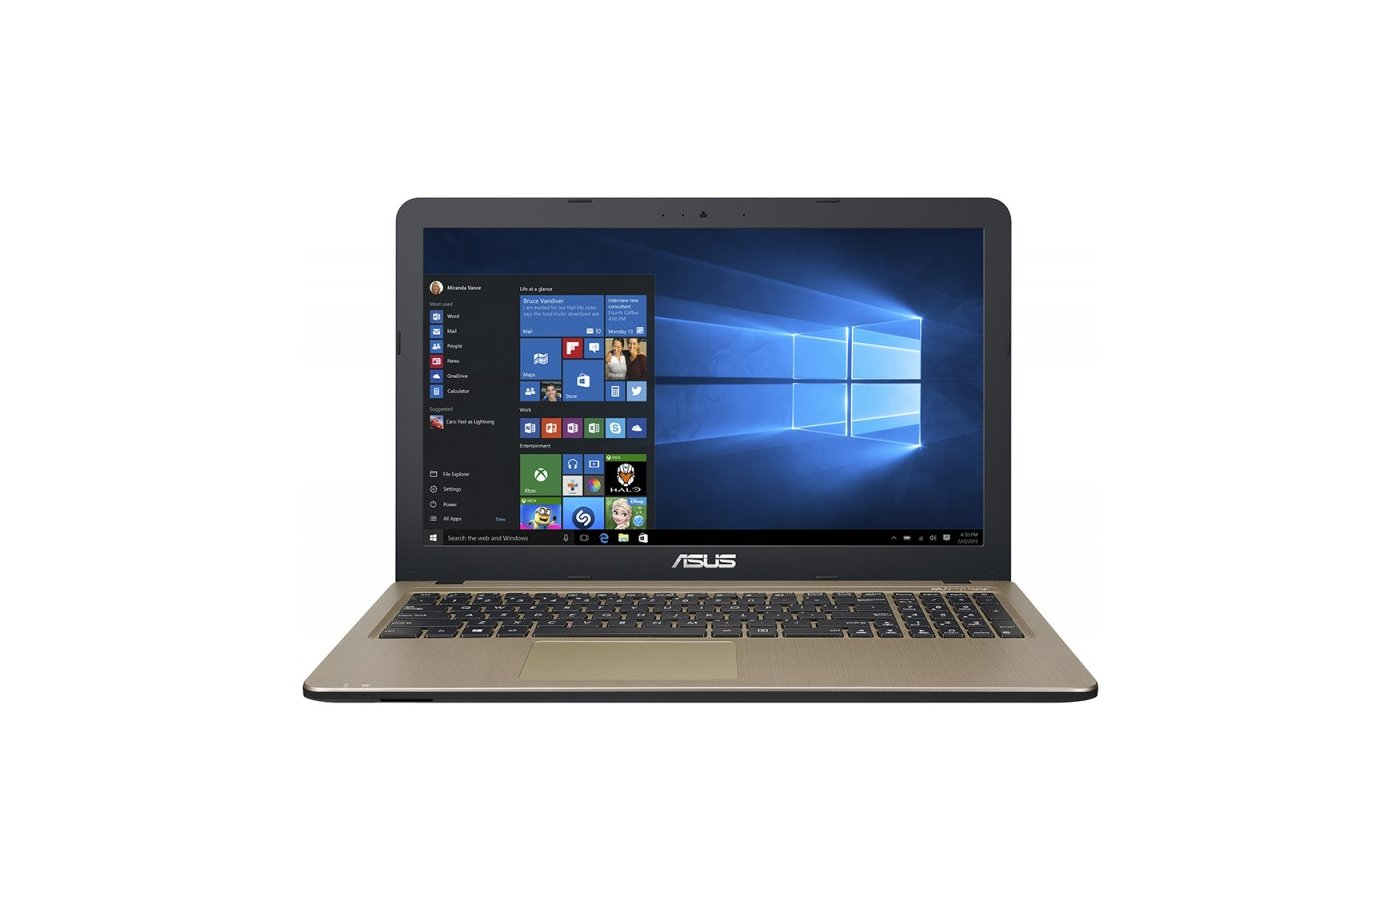 Ноутбук ASUS X540SA-XX002T /90NB0B31-M00790/ intel N3050/2Gb/500Gb/DVDRW/15.6/WiFi/Win10